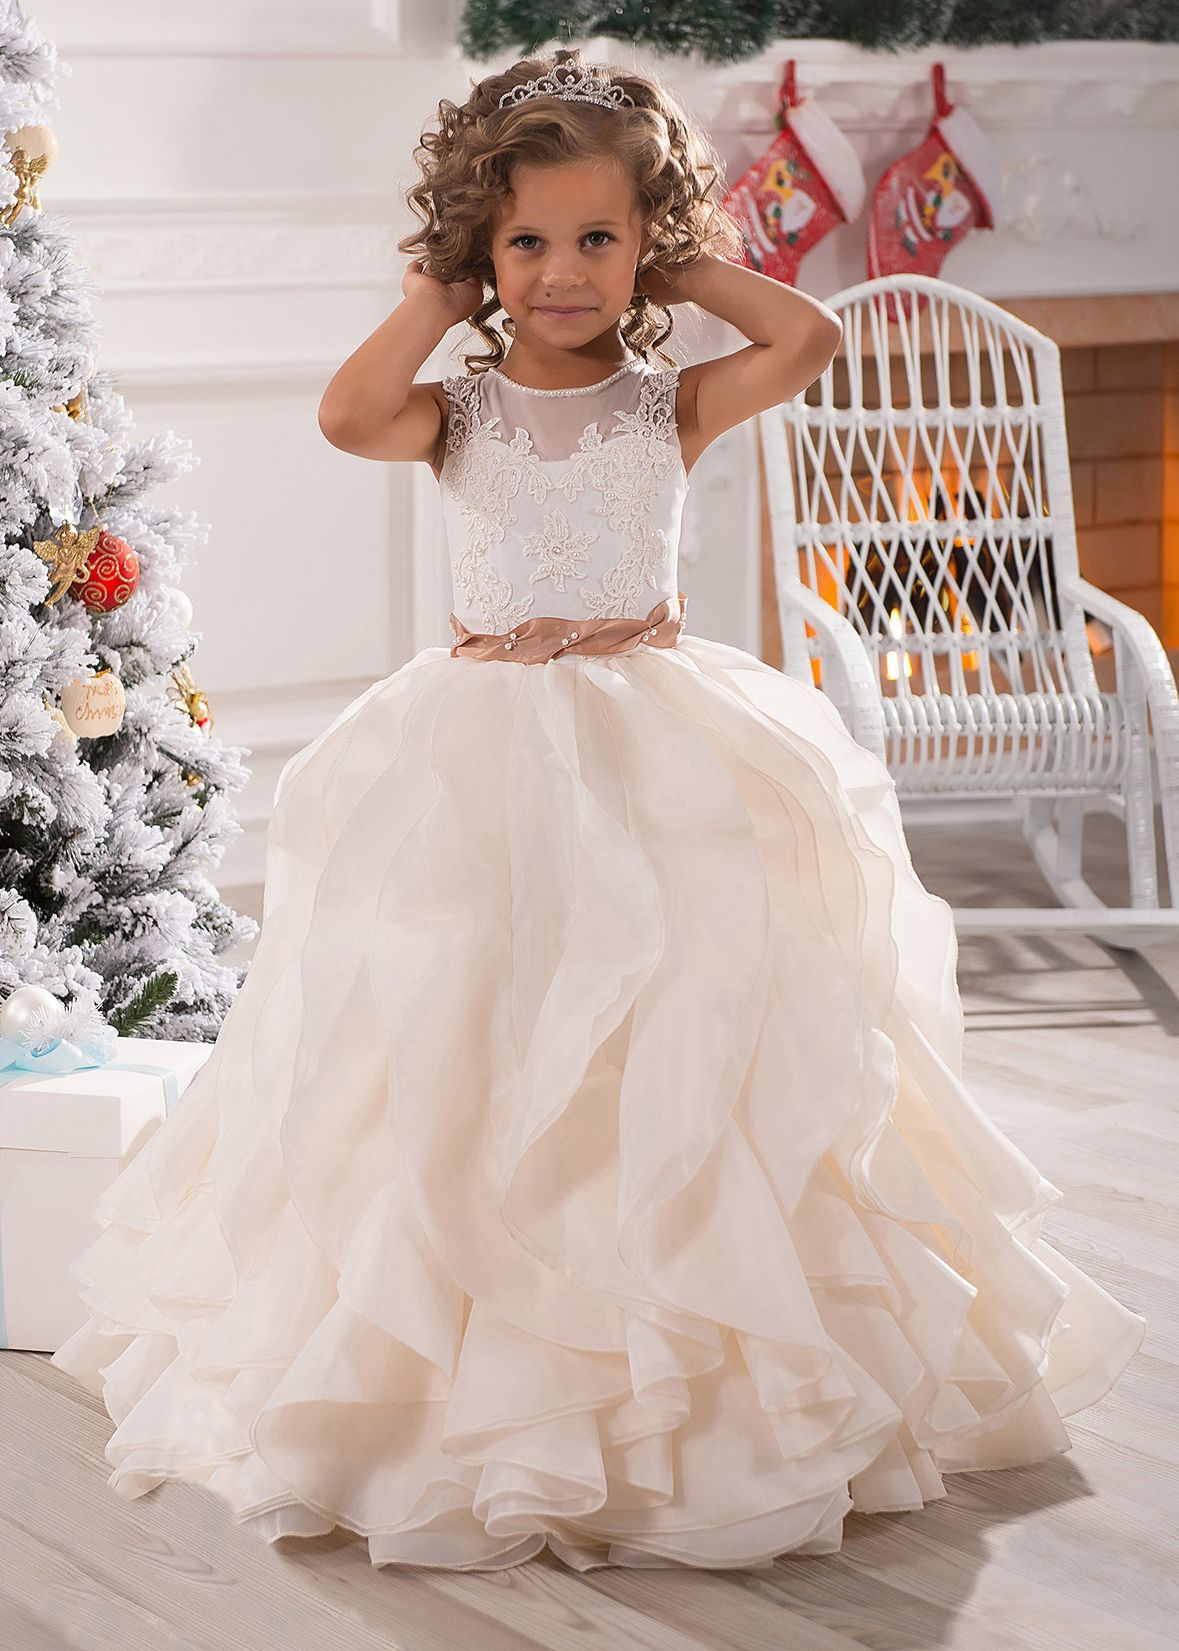 49a90e144b494 Ivory Lace Champagne Organza Ruffle Long Flower Girl Dress | A Few ...